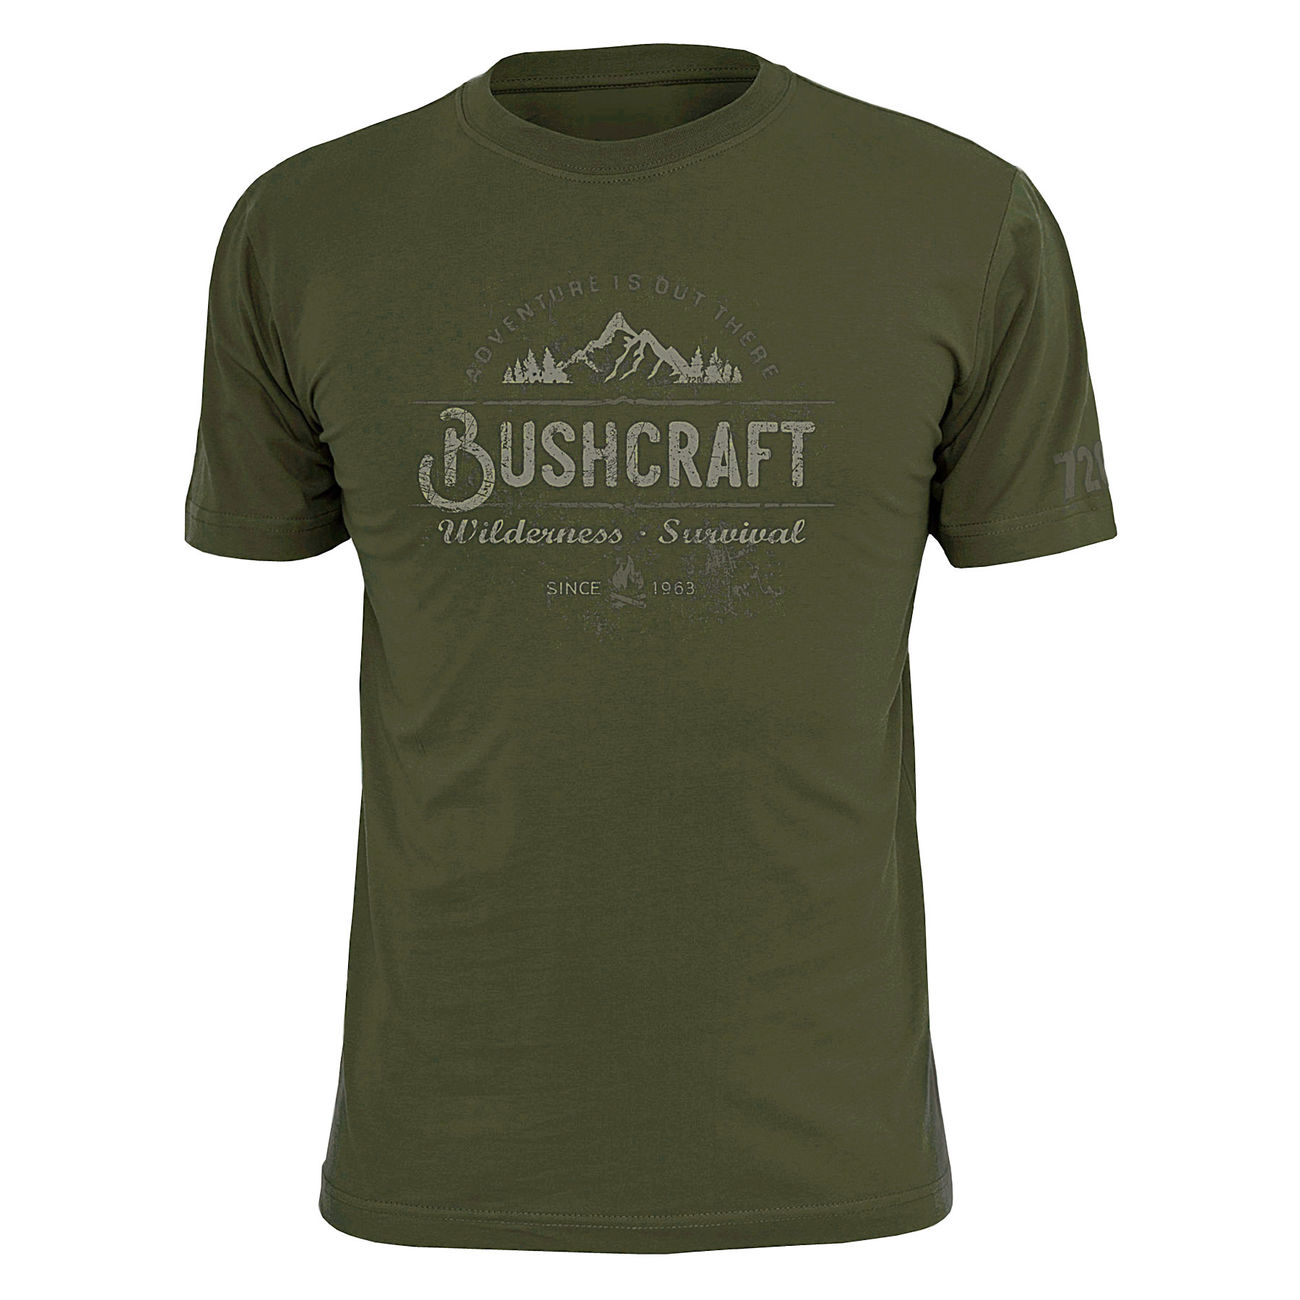 720gear T-Shirt Bushcraft 0